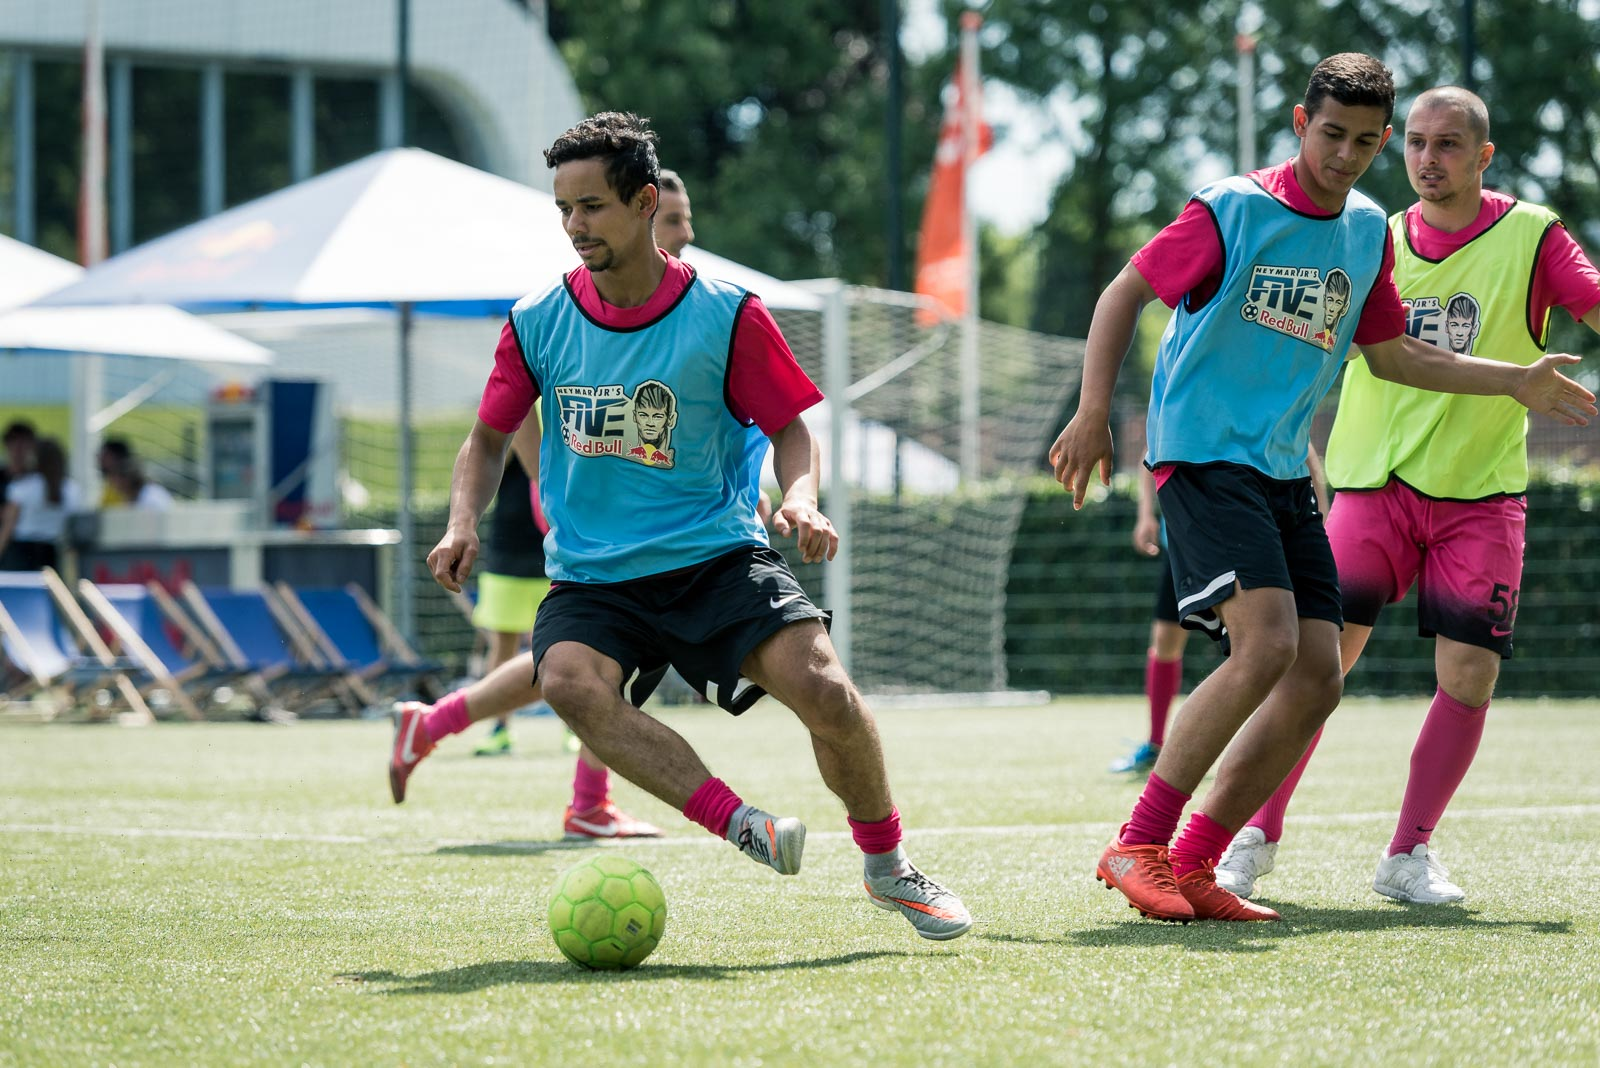 Action during Red Bull Neymar Jr's Five football tournament